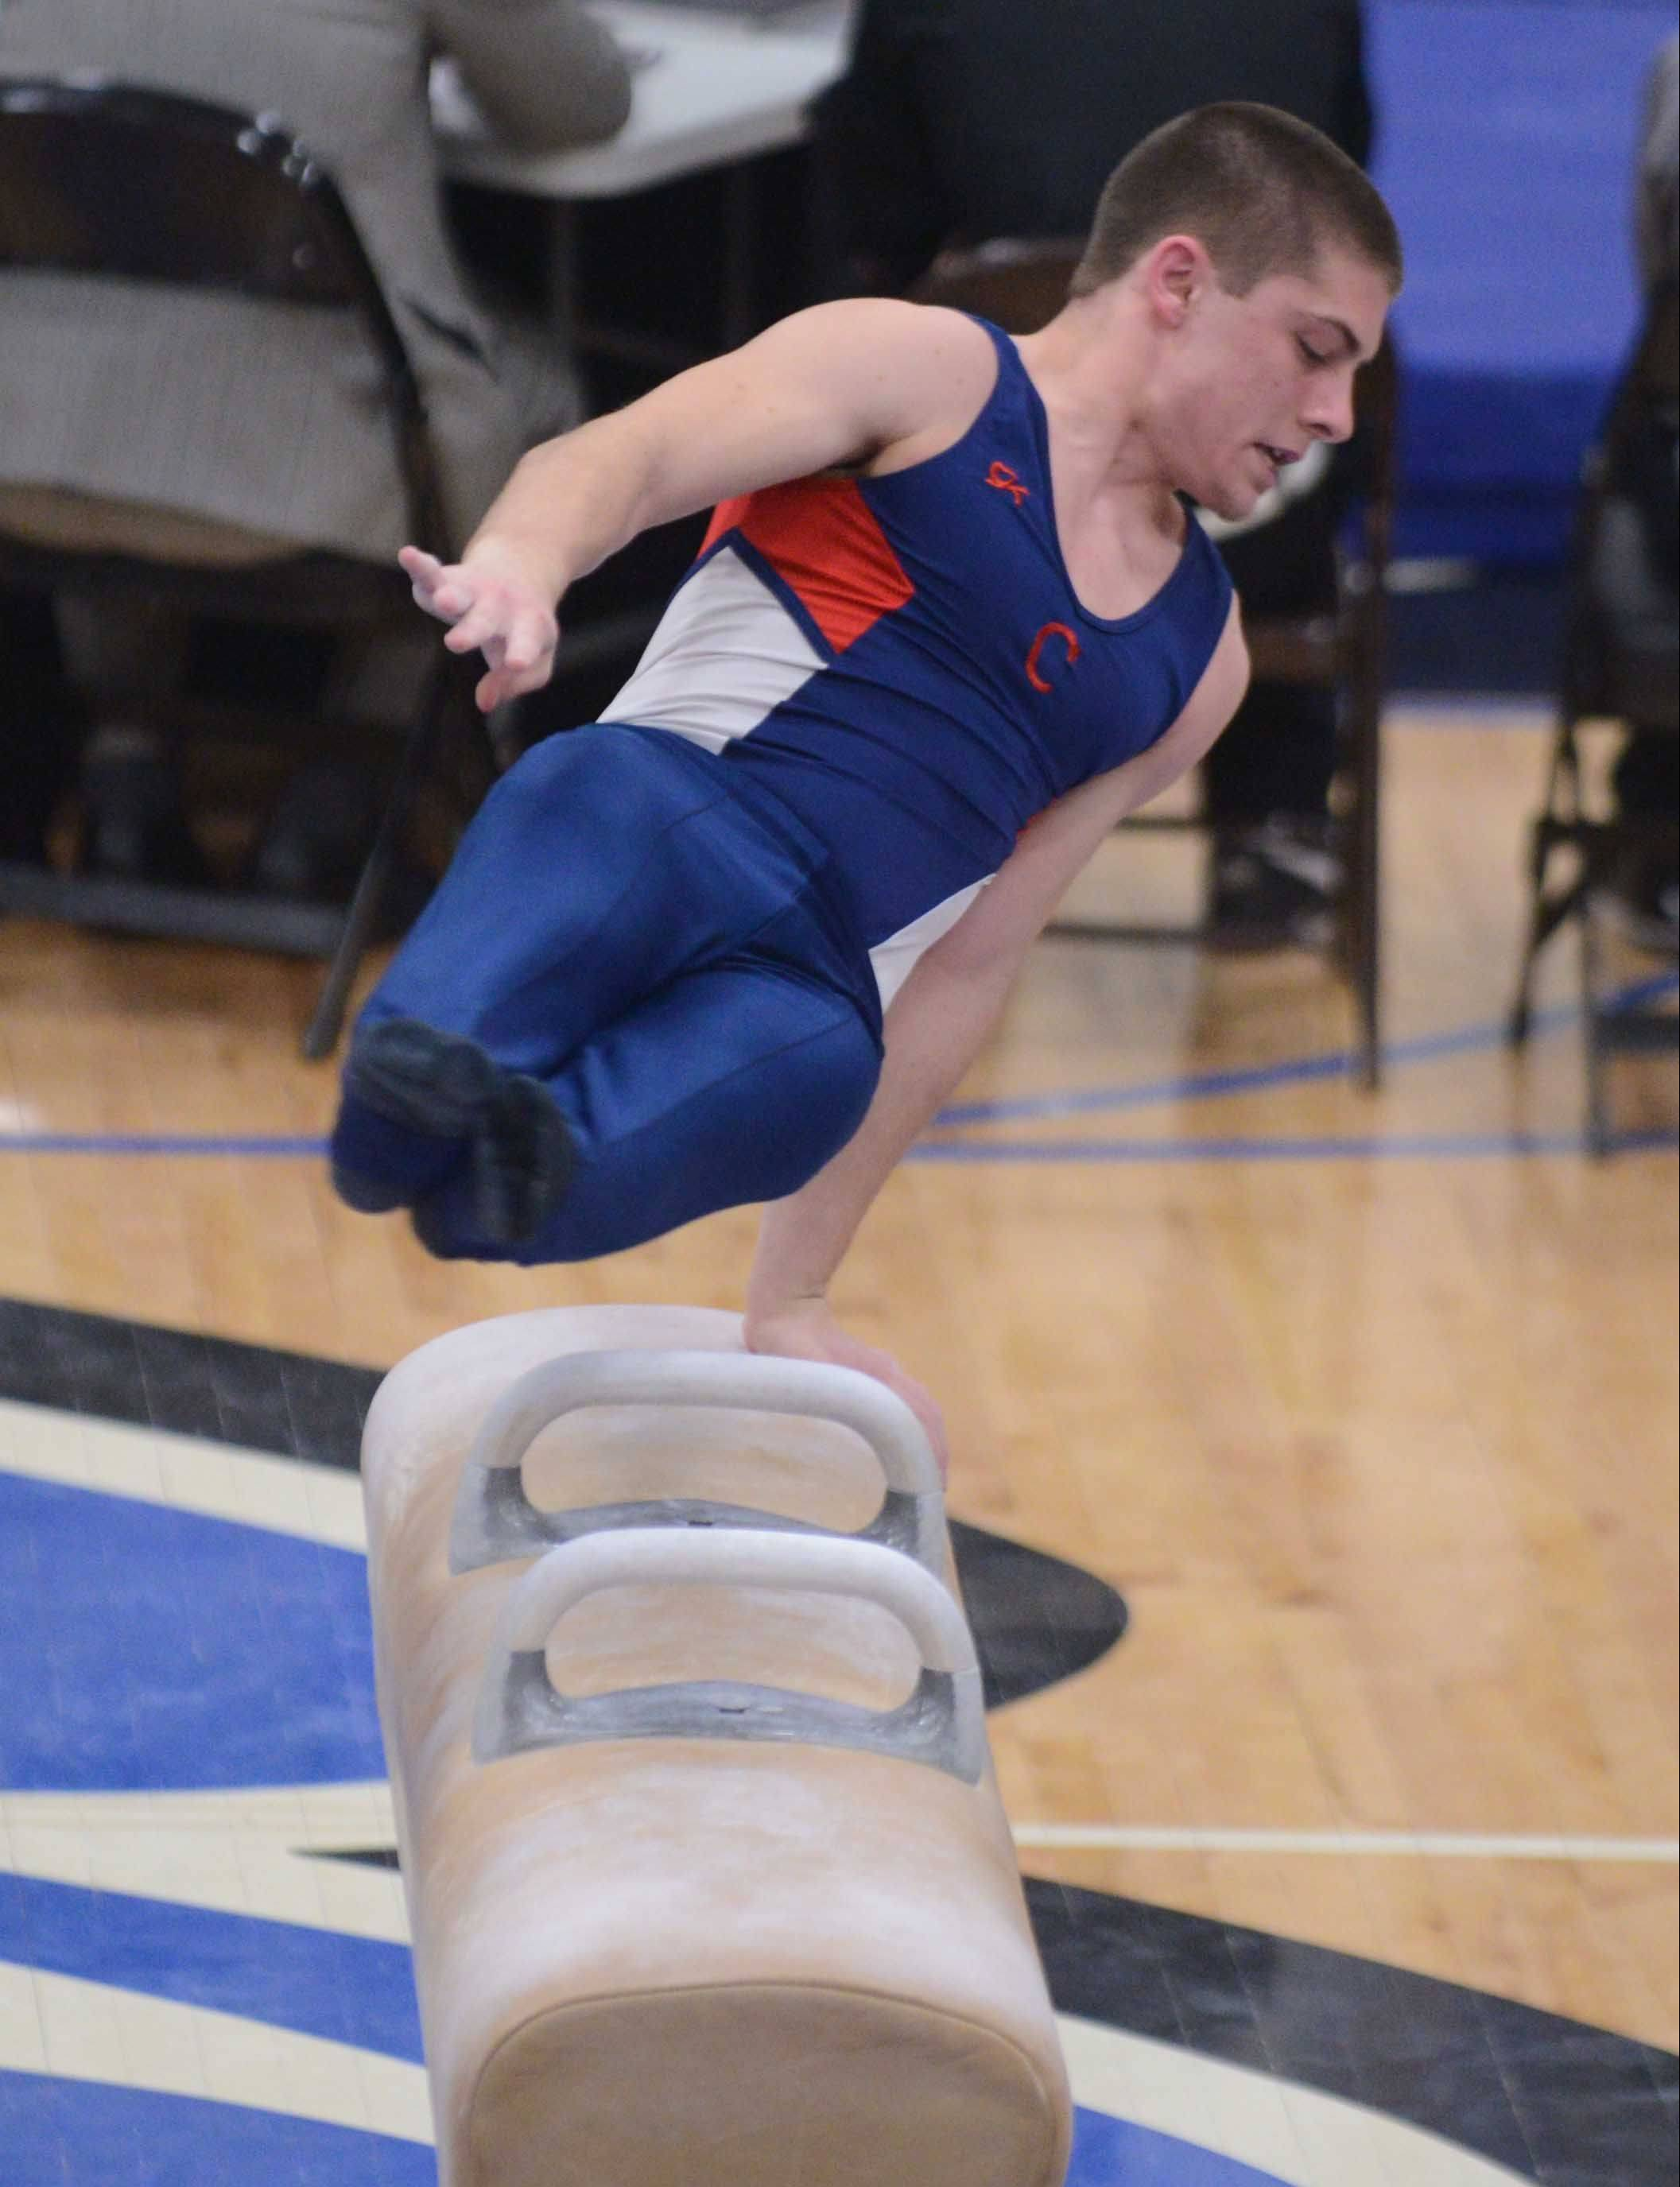 Joey Mauk of Conant works pommel horse during Friday's boys gymnastics state meet action at Lincoln-Way East in Frankfort on Friday.